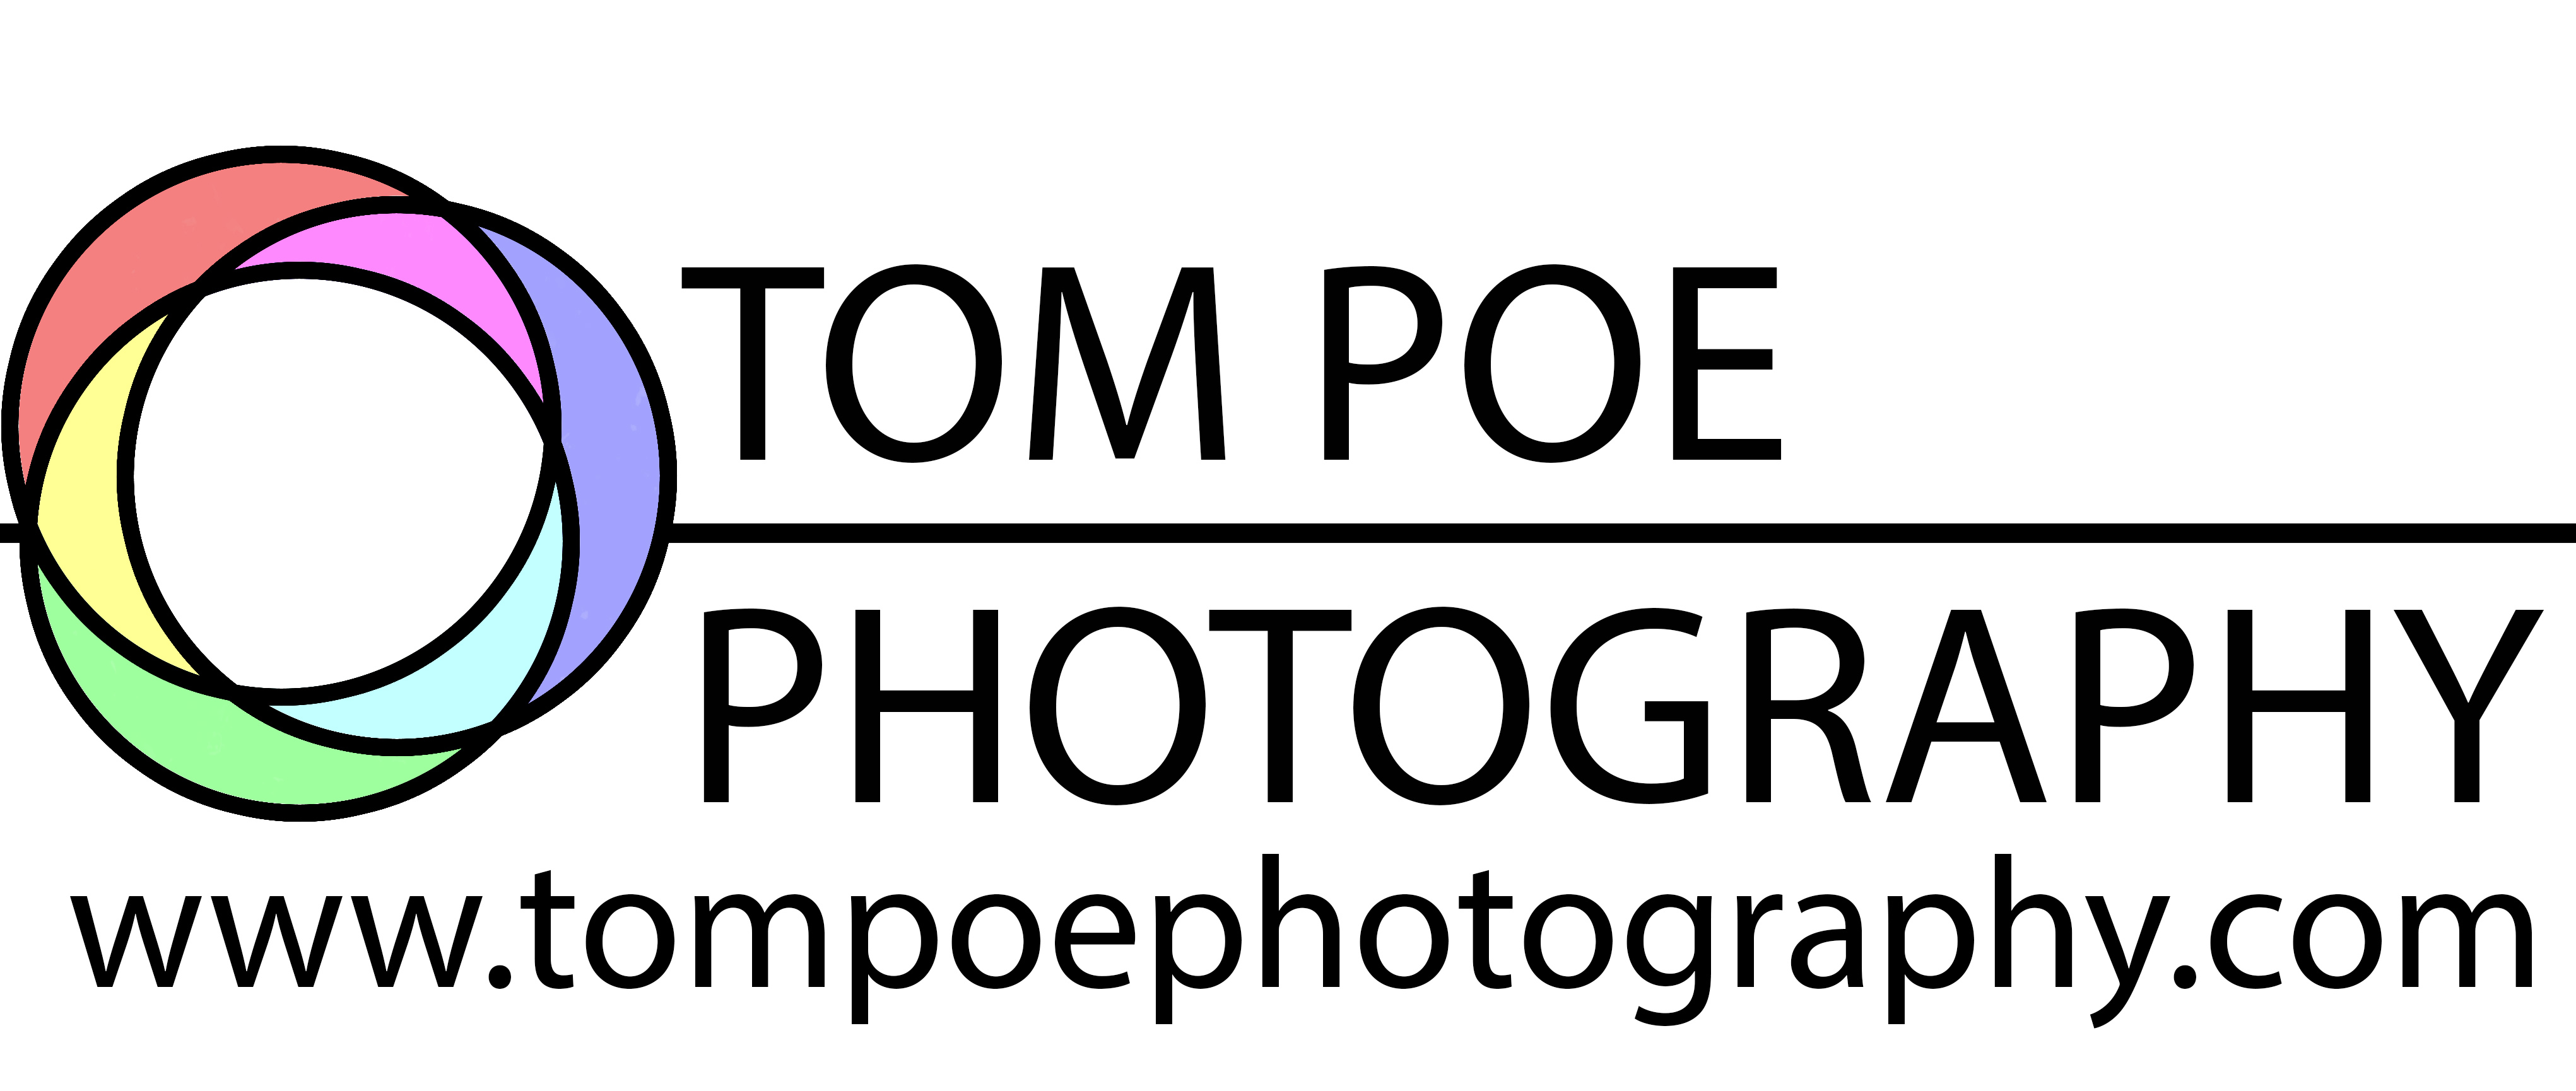 Tom Poe Photography